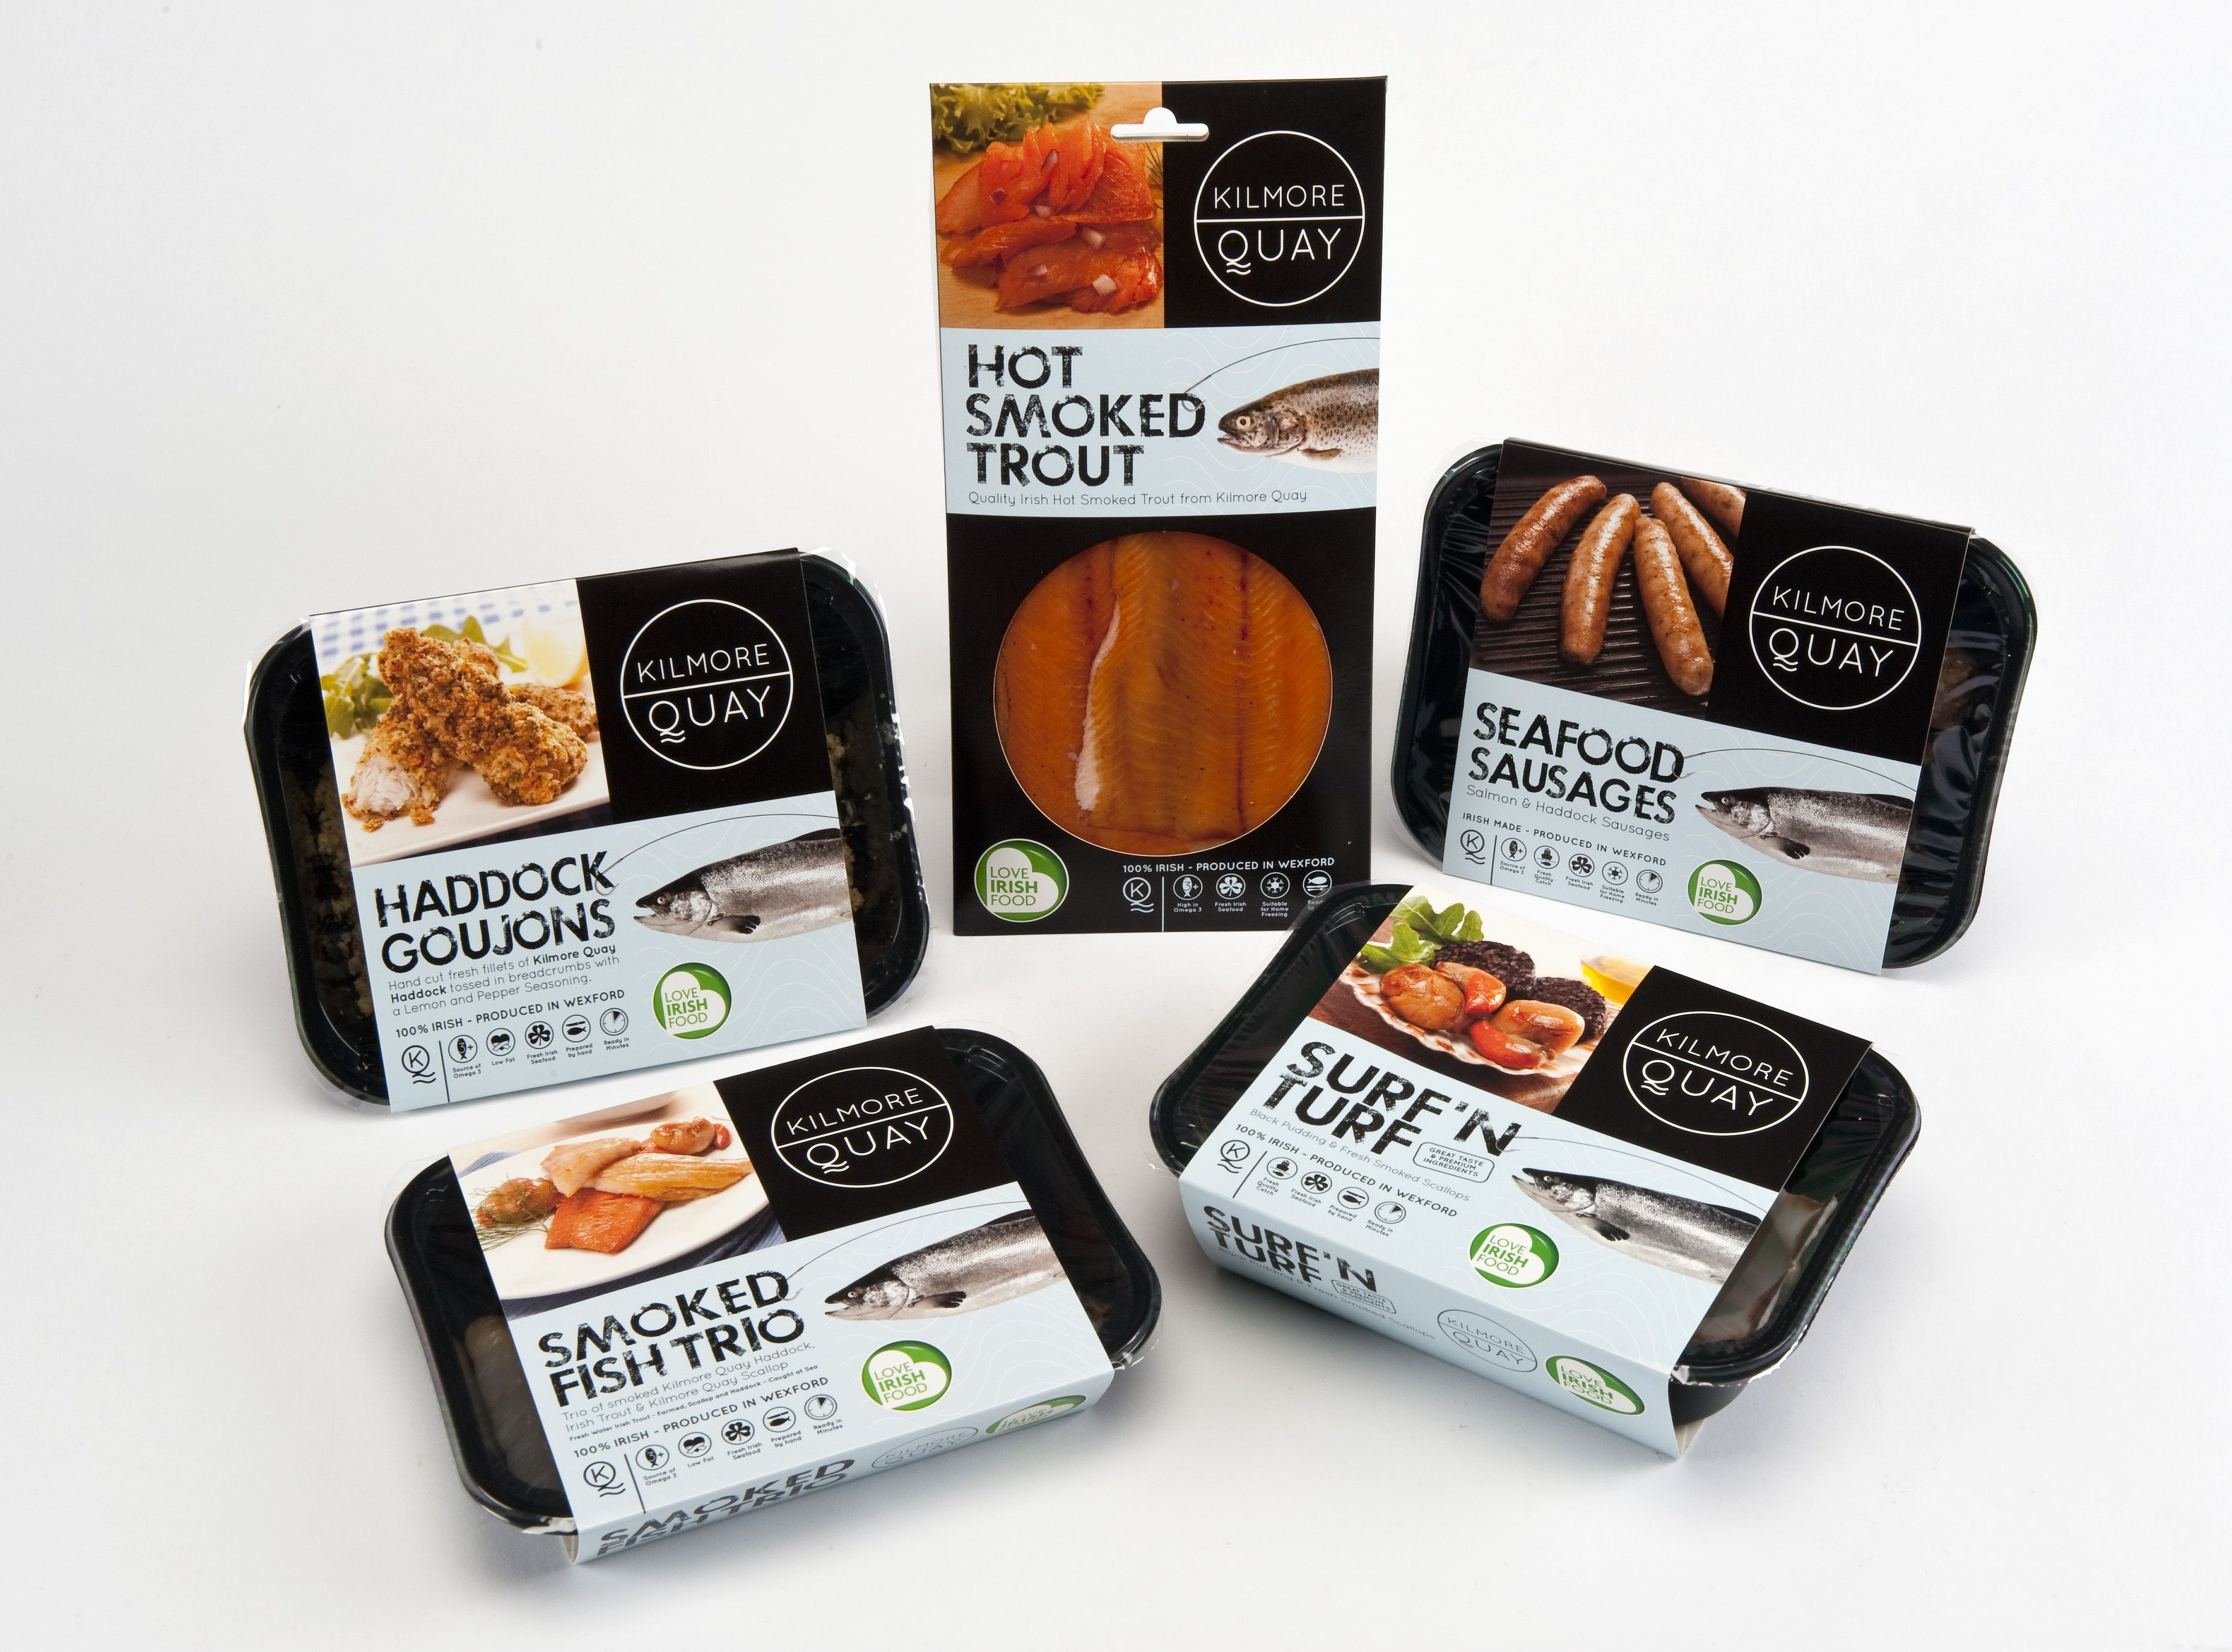 http://www.kilmorequayseafood.co.uk/our-services/retail ...